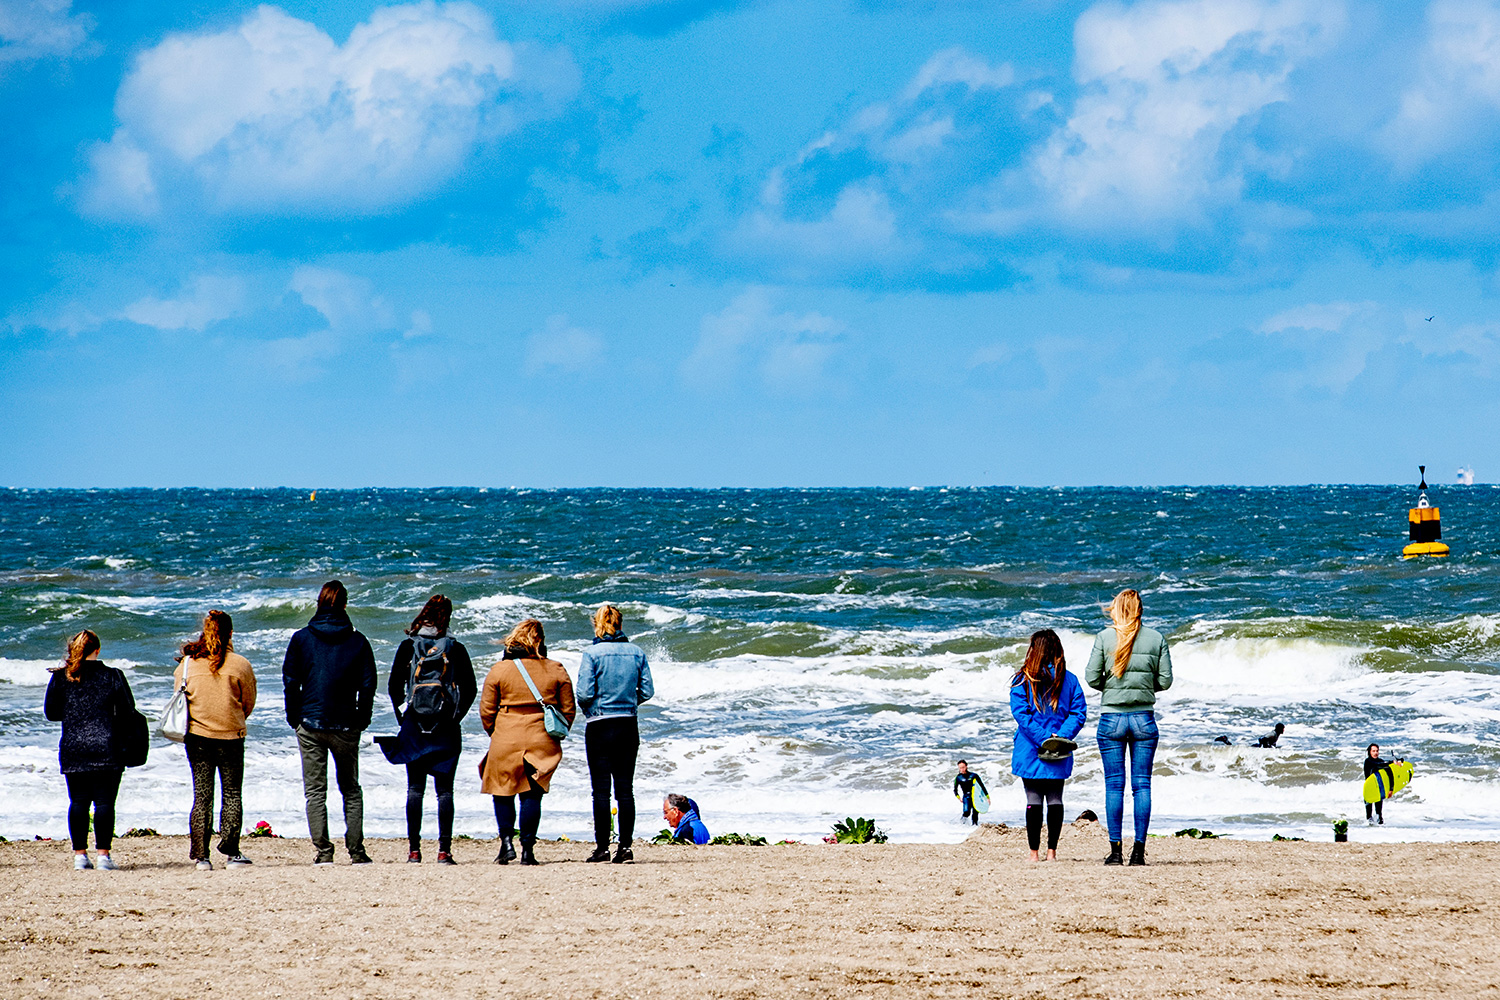 """Five surfers died after getting into difficulty in """"avalanche-like"""" sea foam caused by stormy conditions off a popular Dutch beach, police and witnesses said May 12,"""